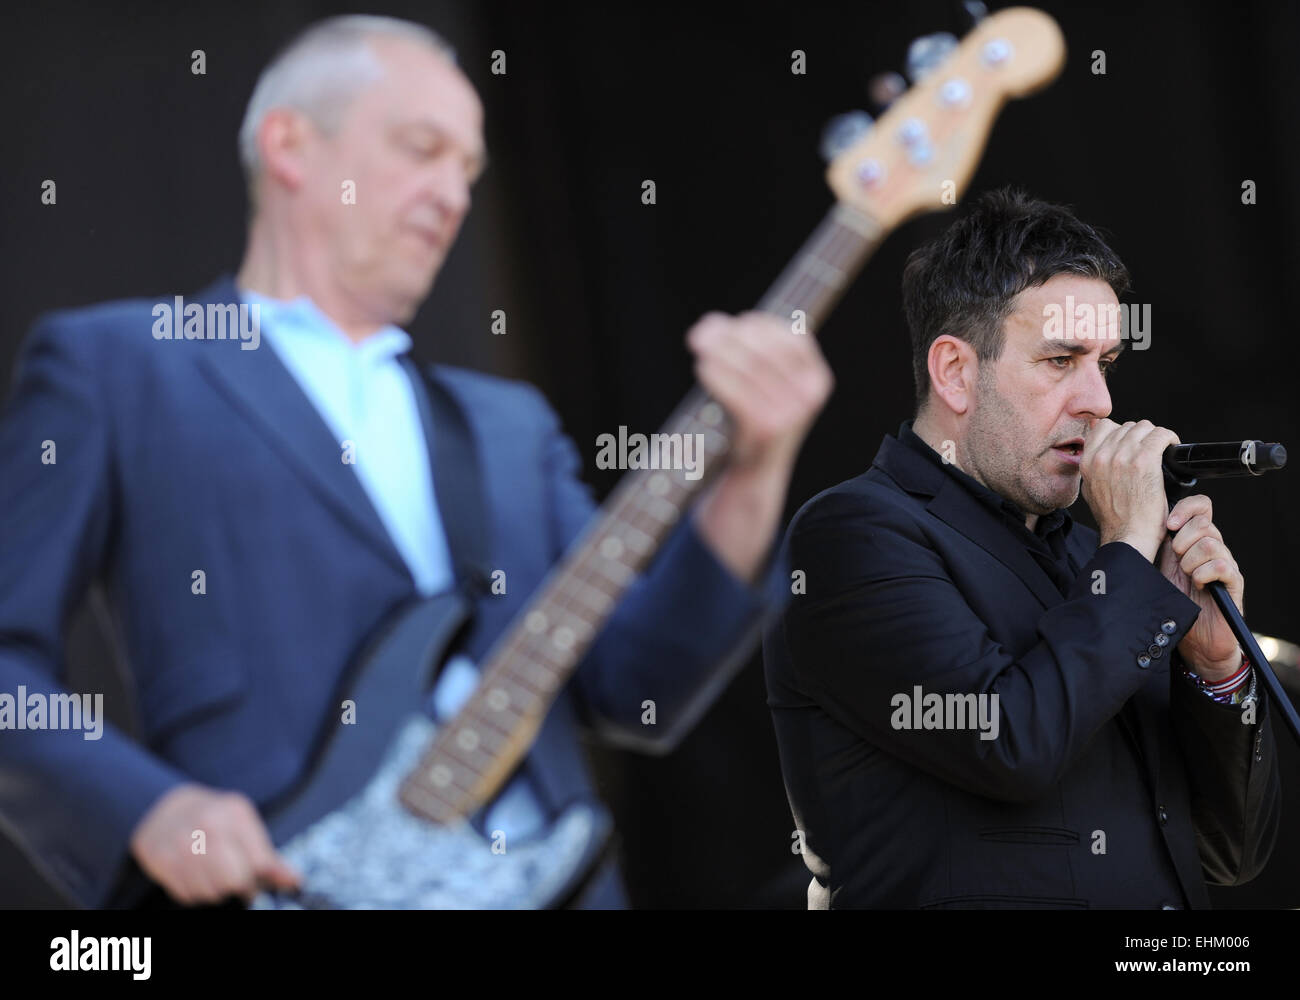 Santiago, Chile. 15th Mar, 2015. Members of the British band 'The Specials', perform during the presentation - Stock Image